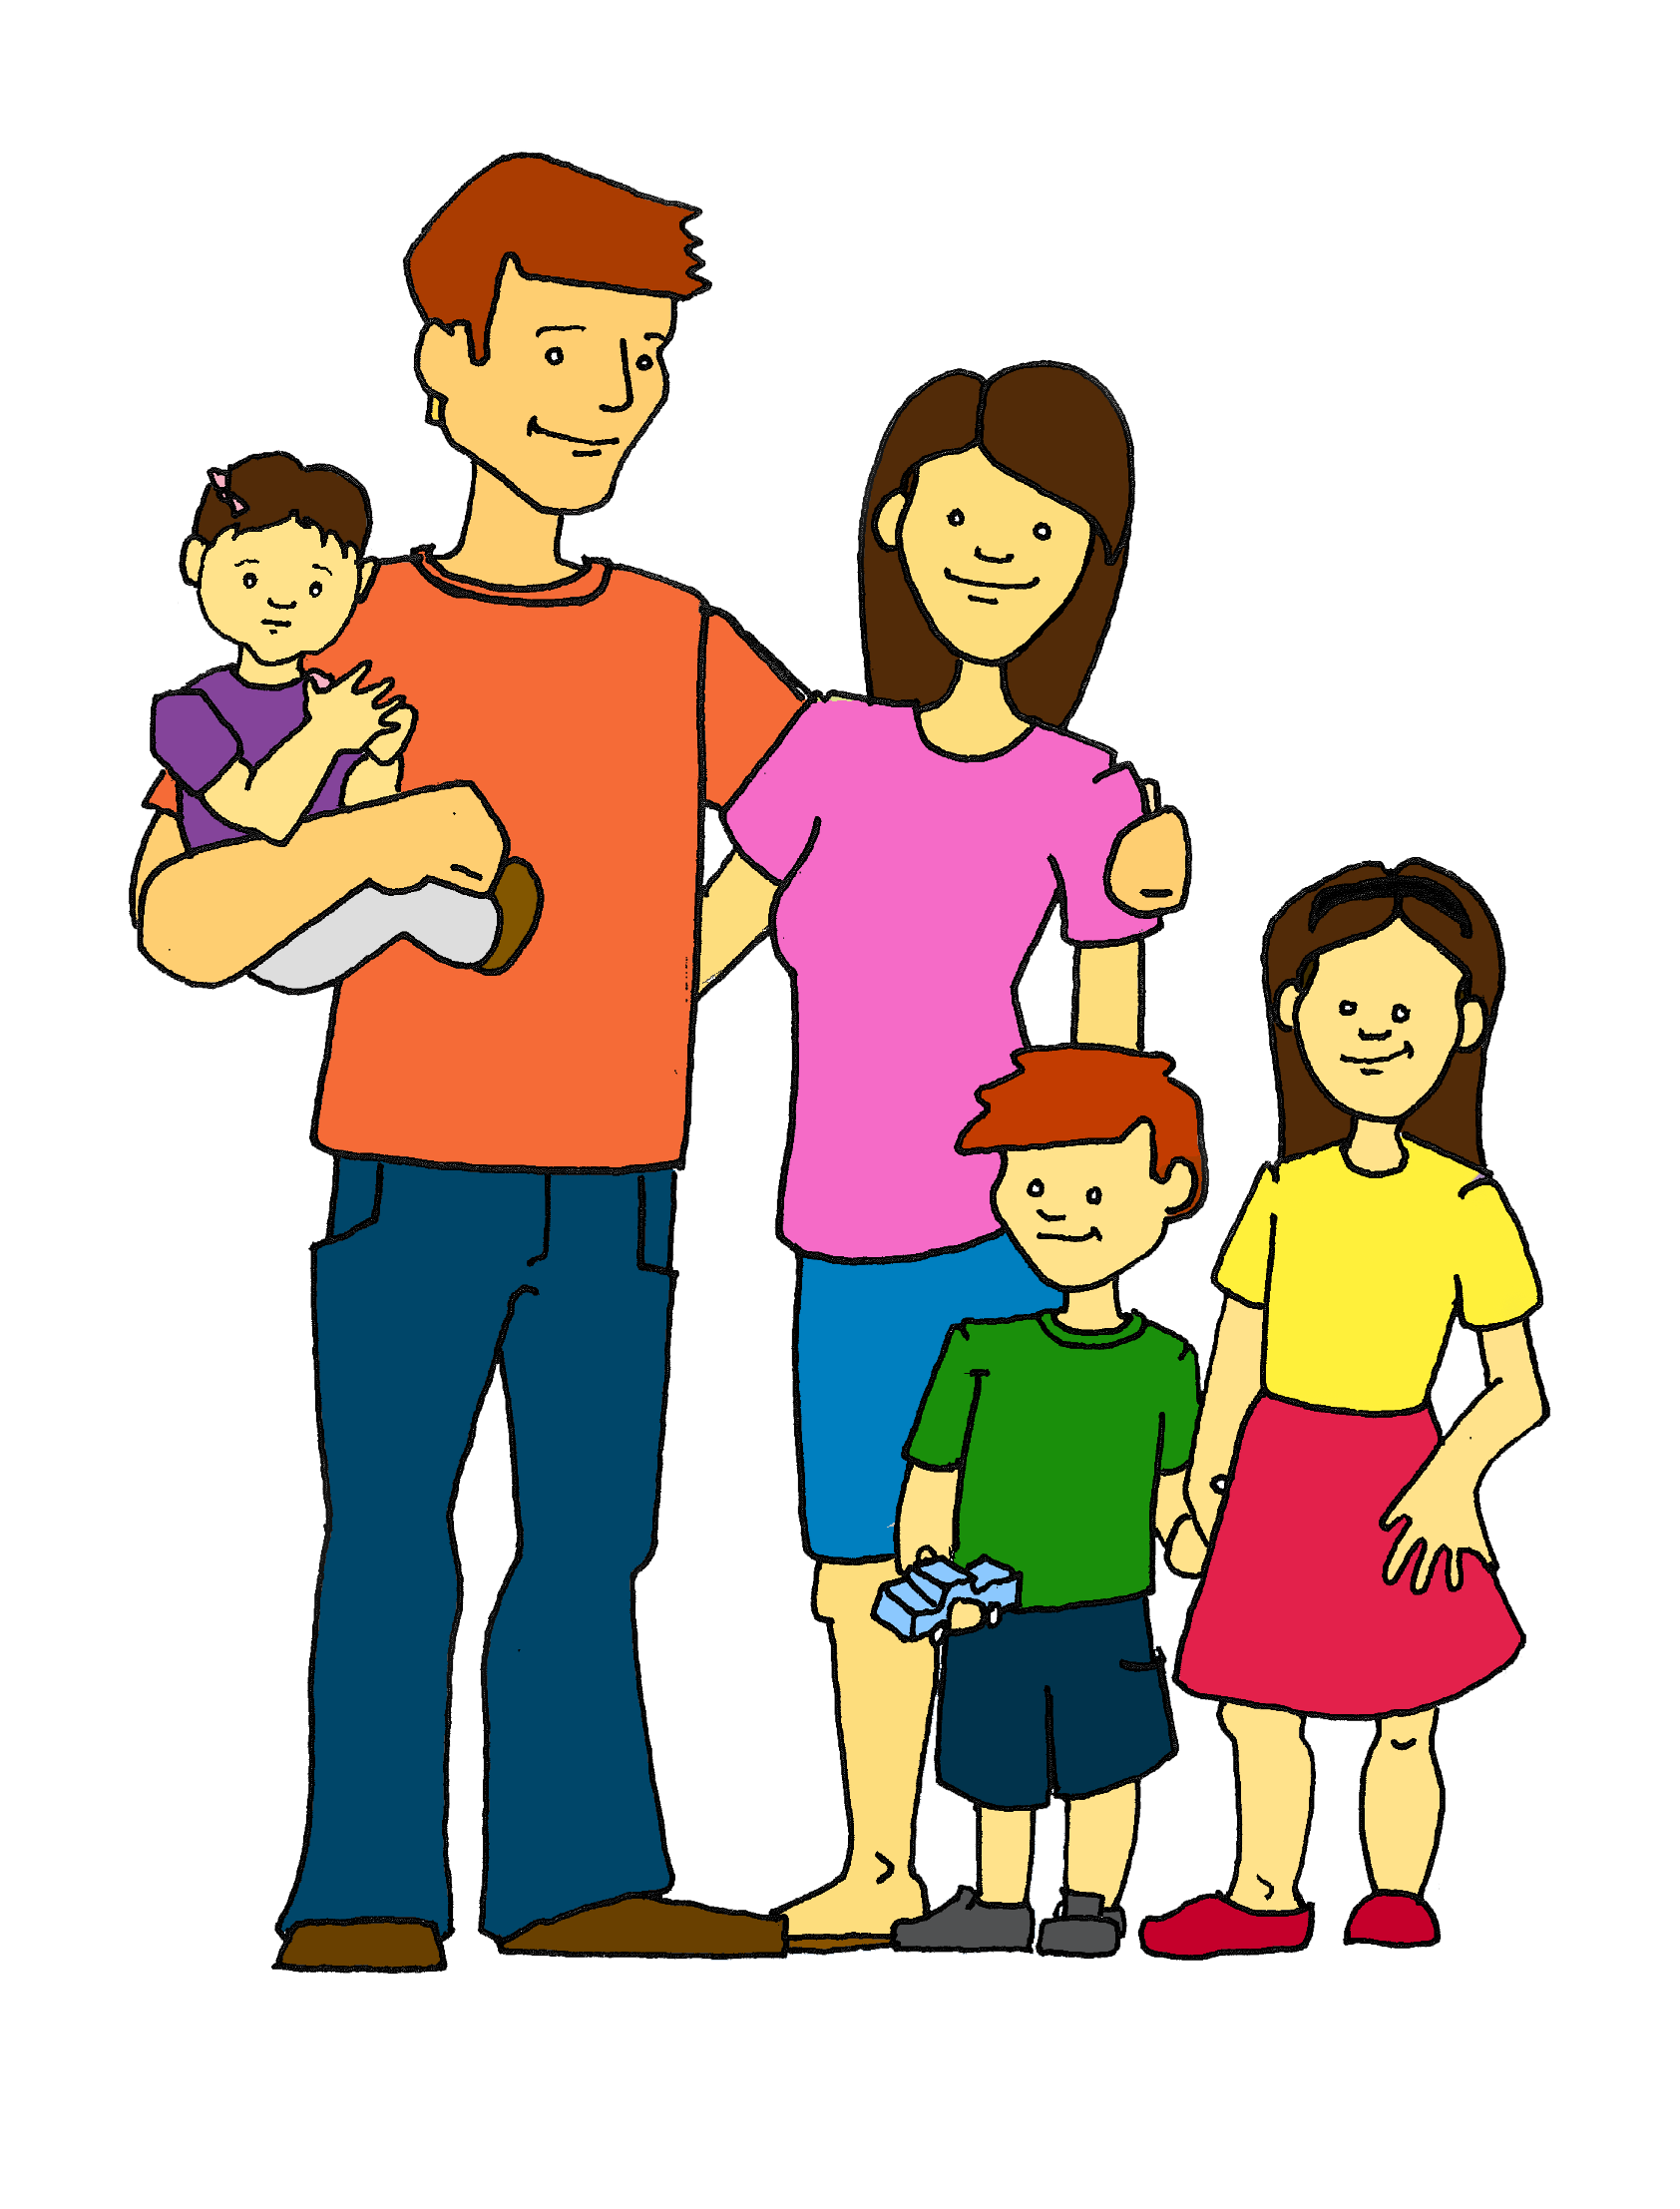 Young clipart family 6, Young family 6 Transparent FREE for.